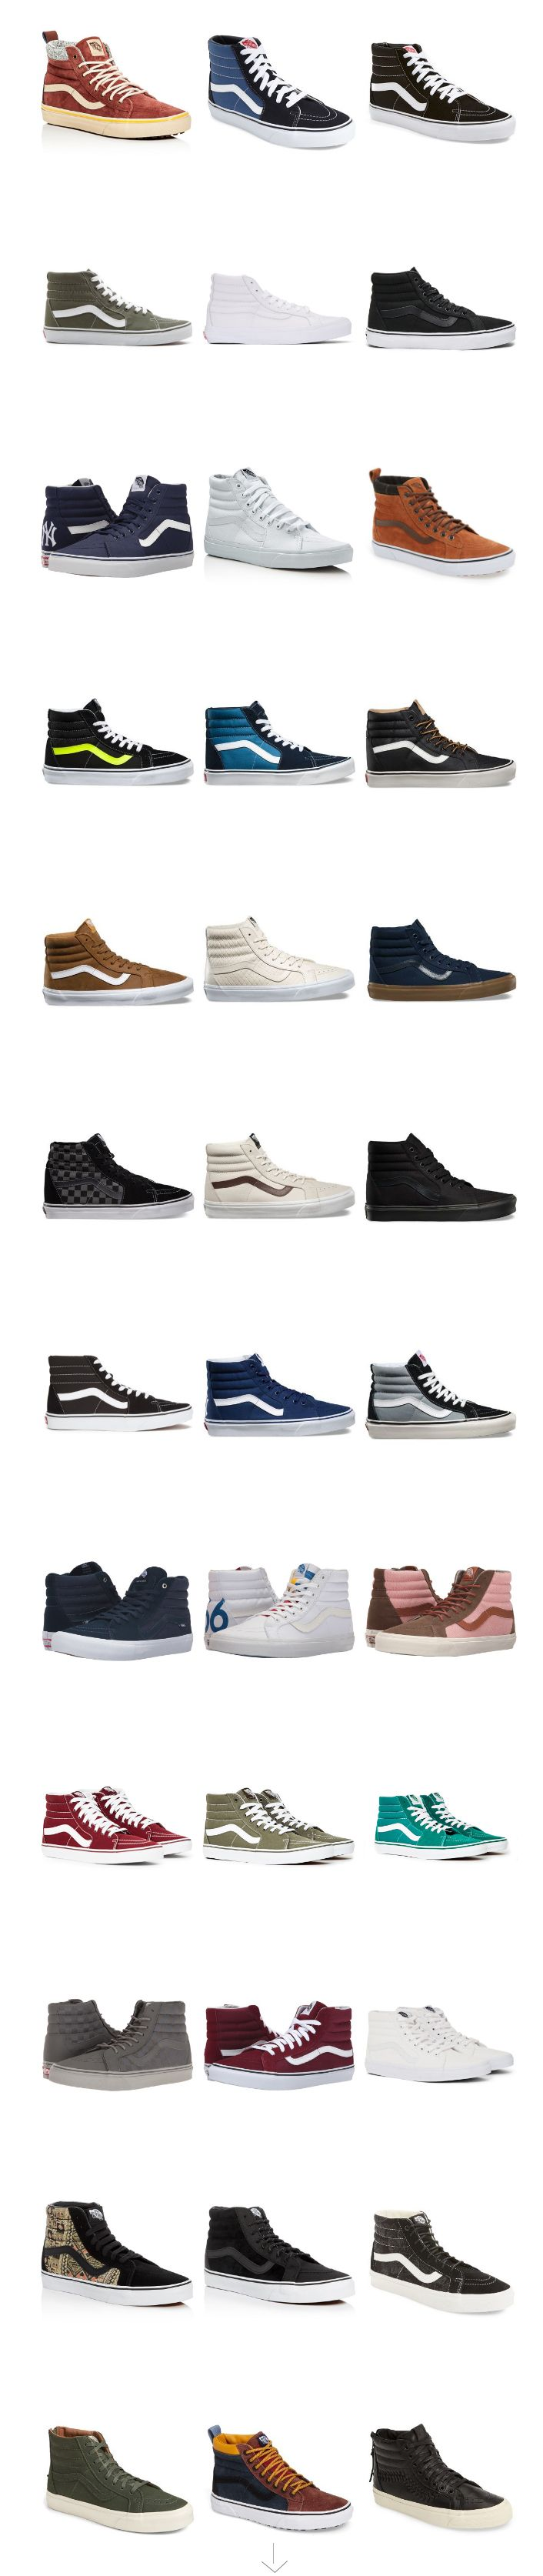 39 Pairs of Vans SK8 Hi Sneakers a big collection with a